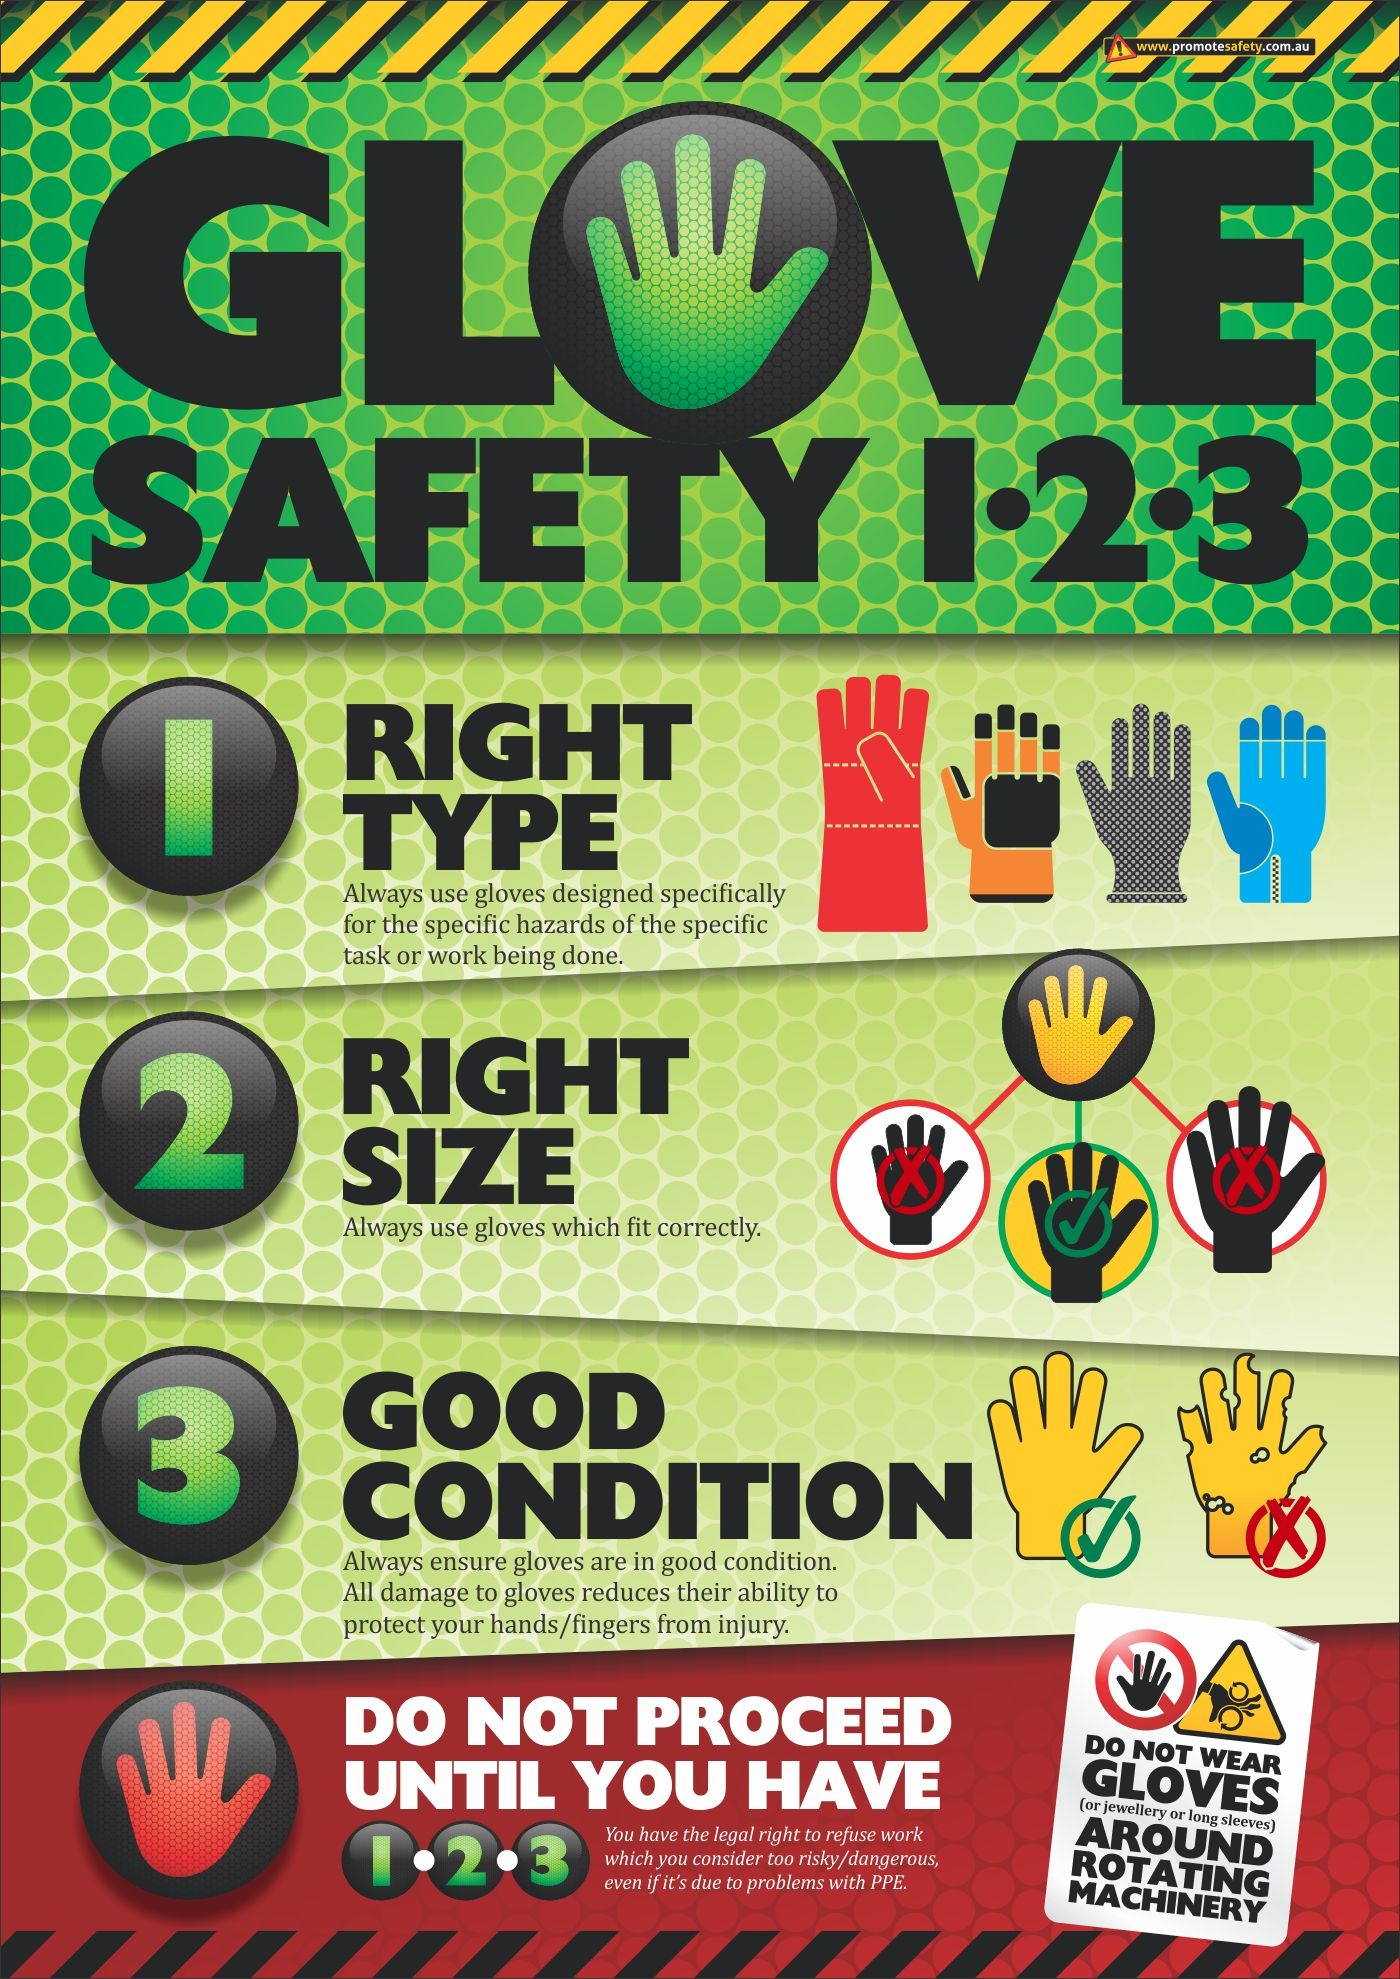 This safety poster reminds workers to do the glove safety